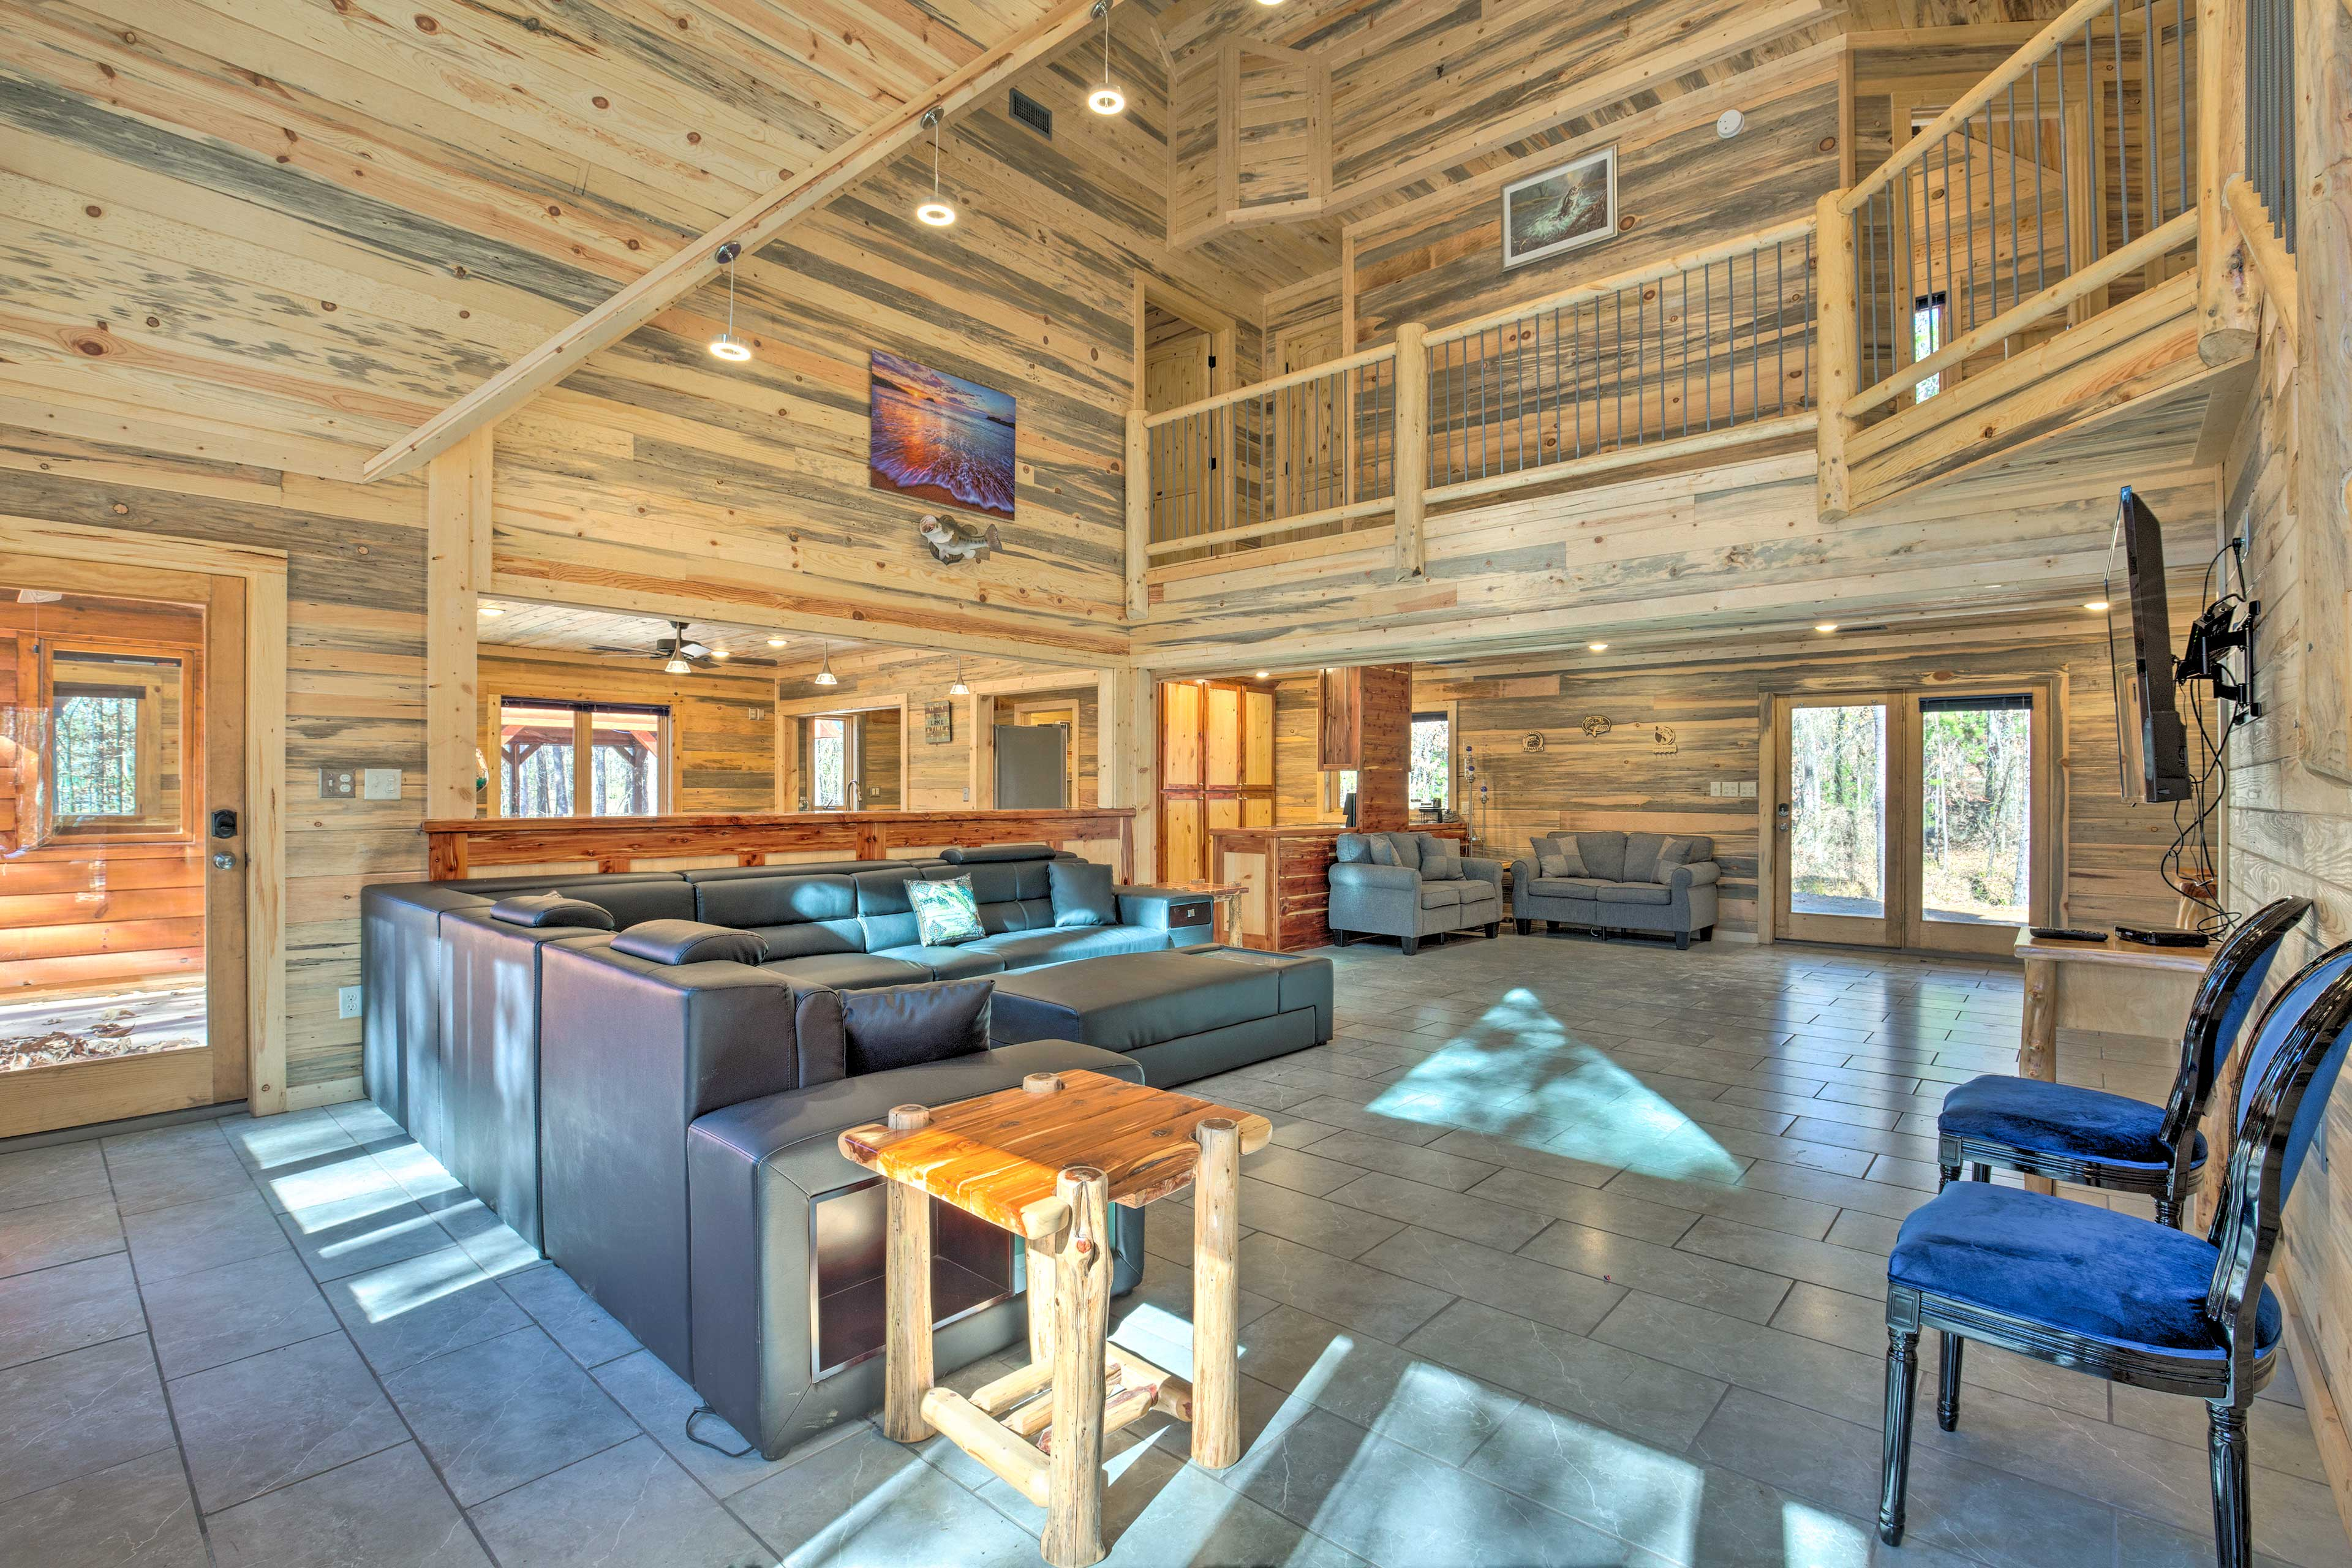 There is more than 2,990 square feet of interior space to kick back in.